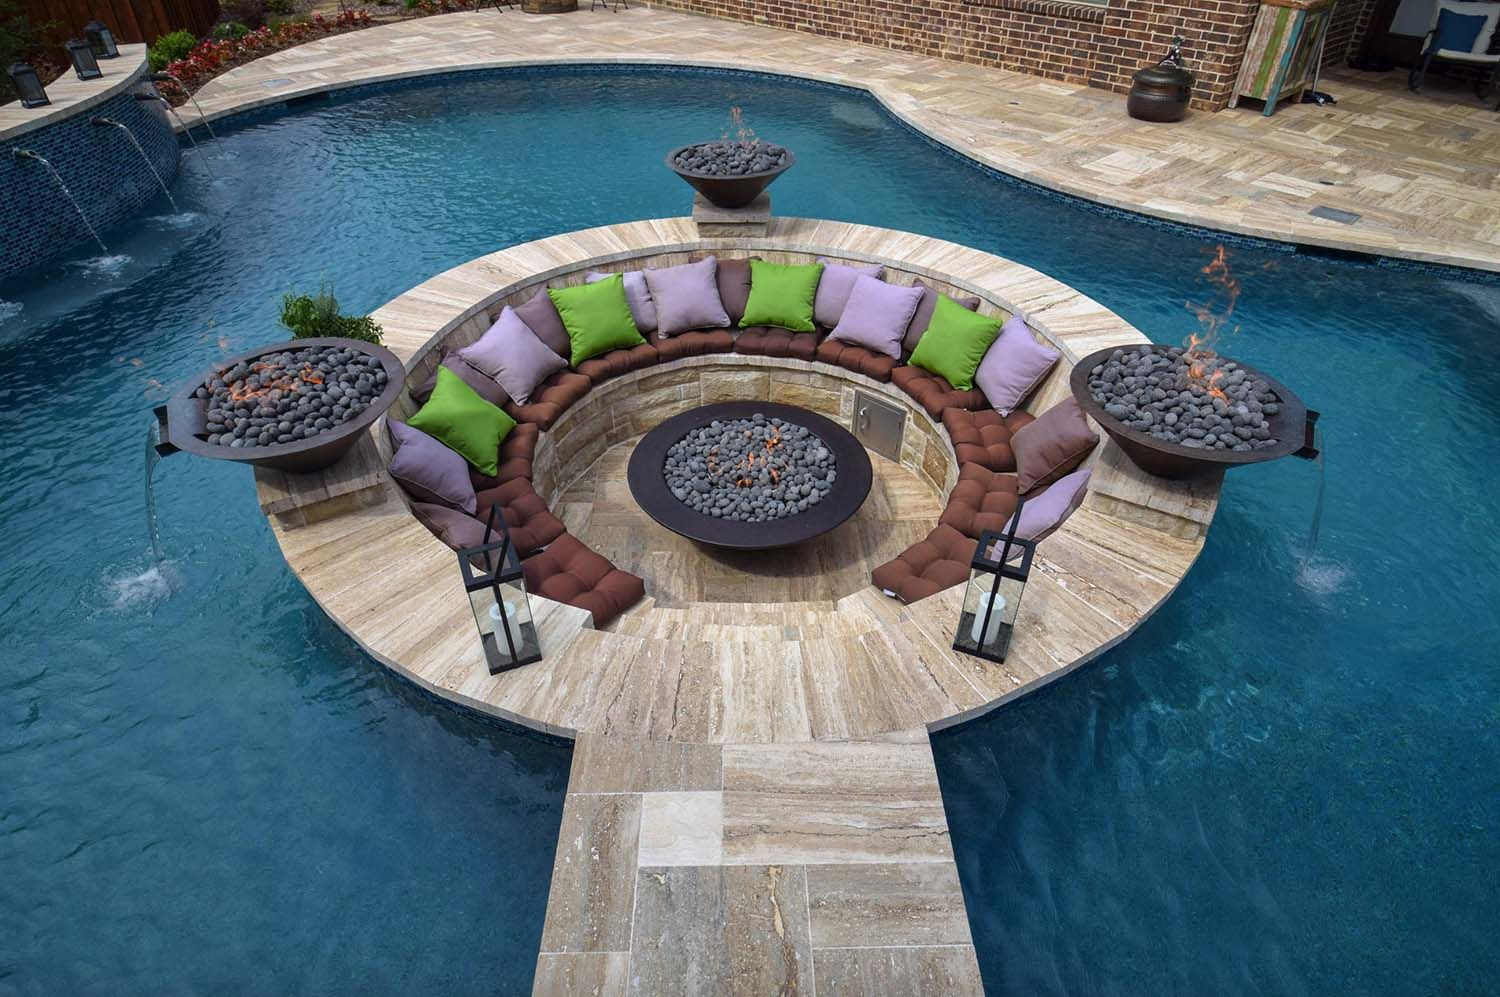 20 Spectacular Outdoor Swimming Pool Ideas With Gorgeous Surroundings Geometric Pool Luxury Swimming Pools Swimming Pool Designs